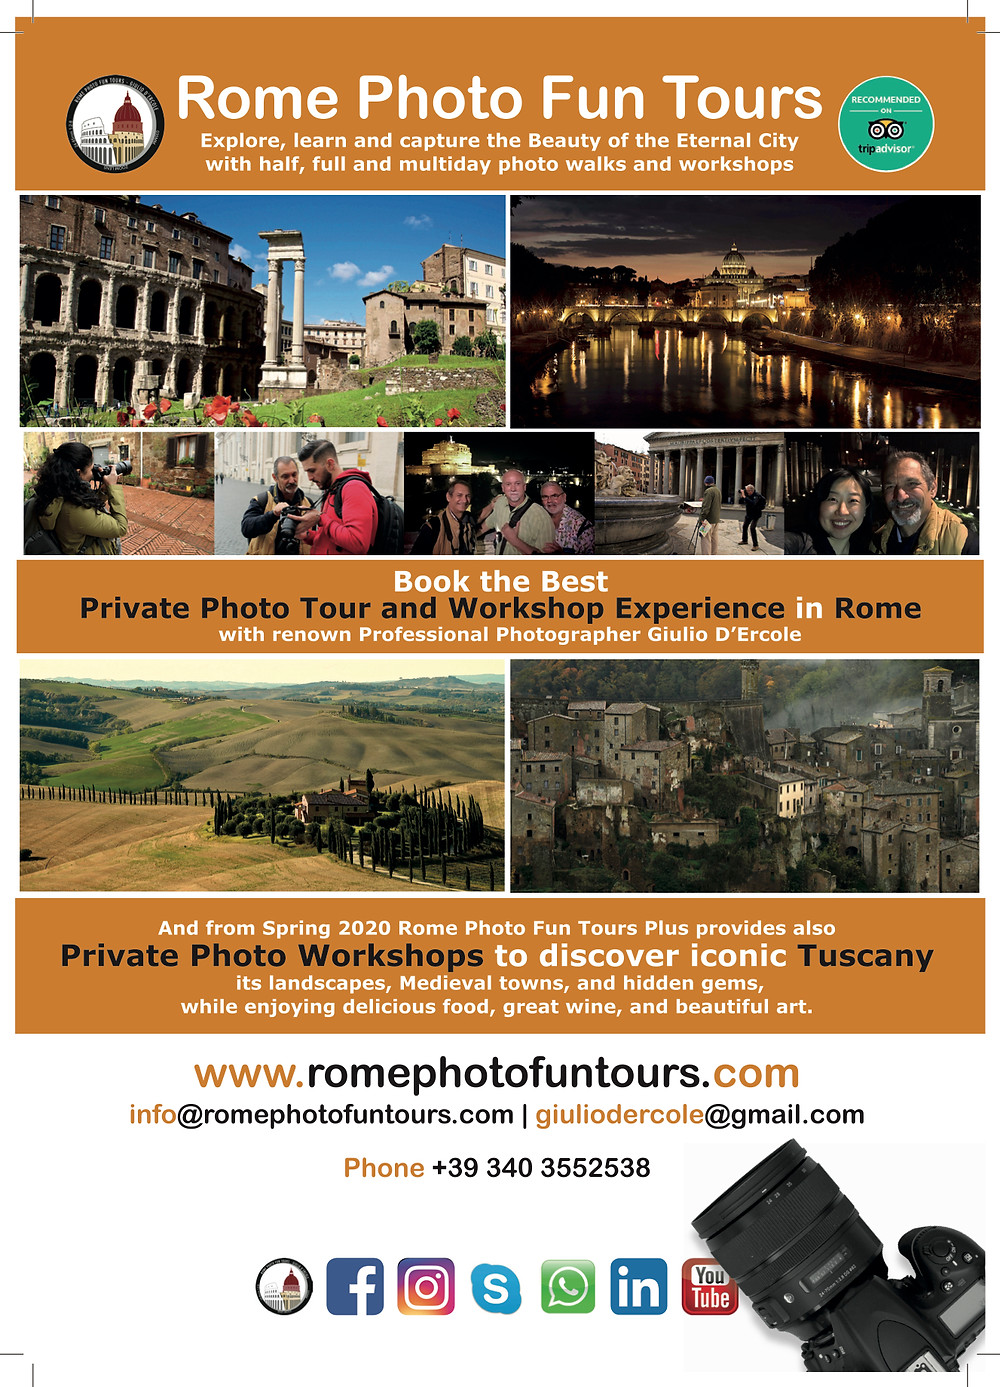 When the going gets tough, the tough get going! Rome Photo Fun Tours is tough, resilGet 10% discount on our photo workshops by tagging and sharing this and other Rome Photo Fun Tours' posts and come to enjoy the Eternal City